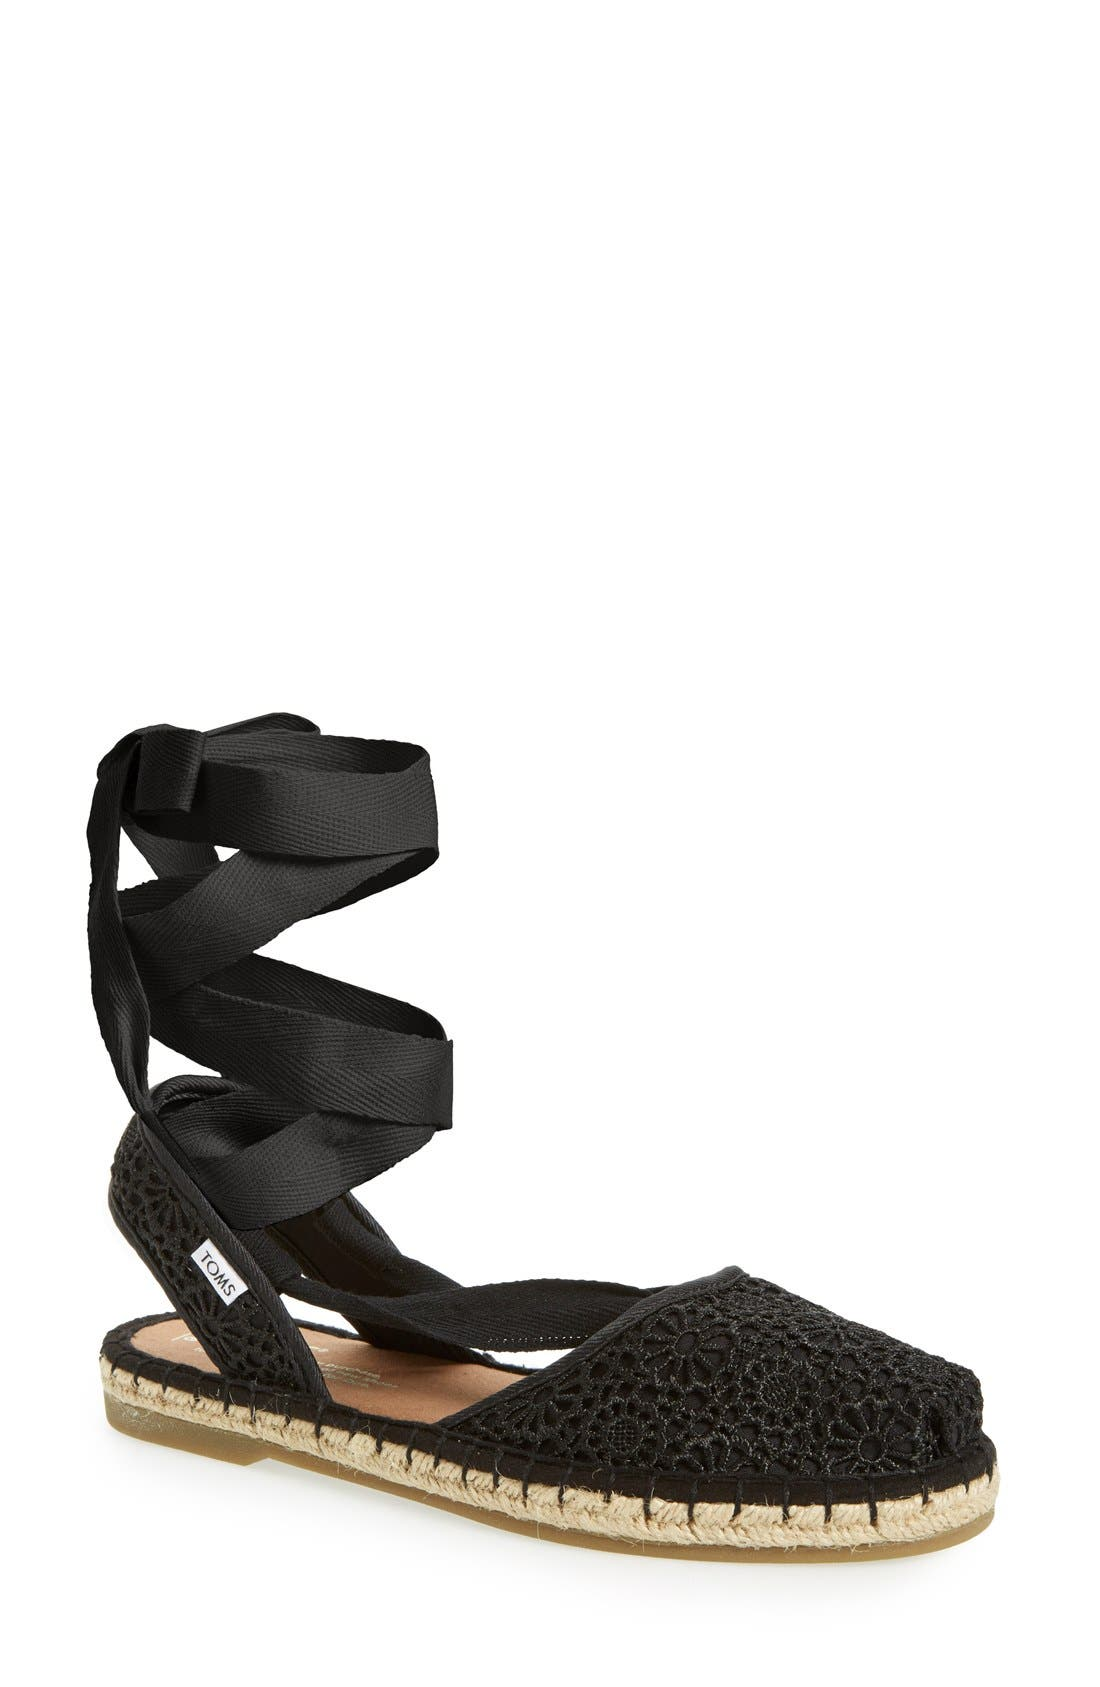 'Bella' Espadrille Sandal,                         Main,                         color, Black Crochet